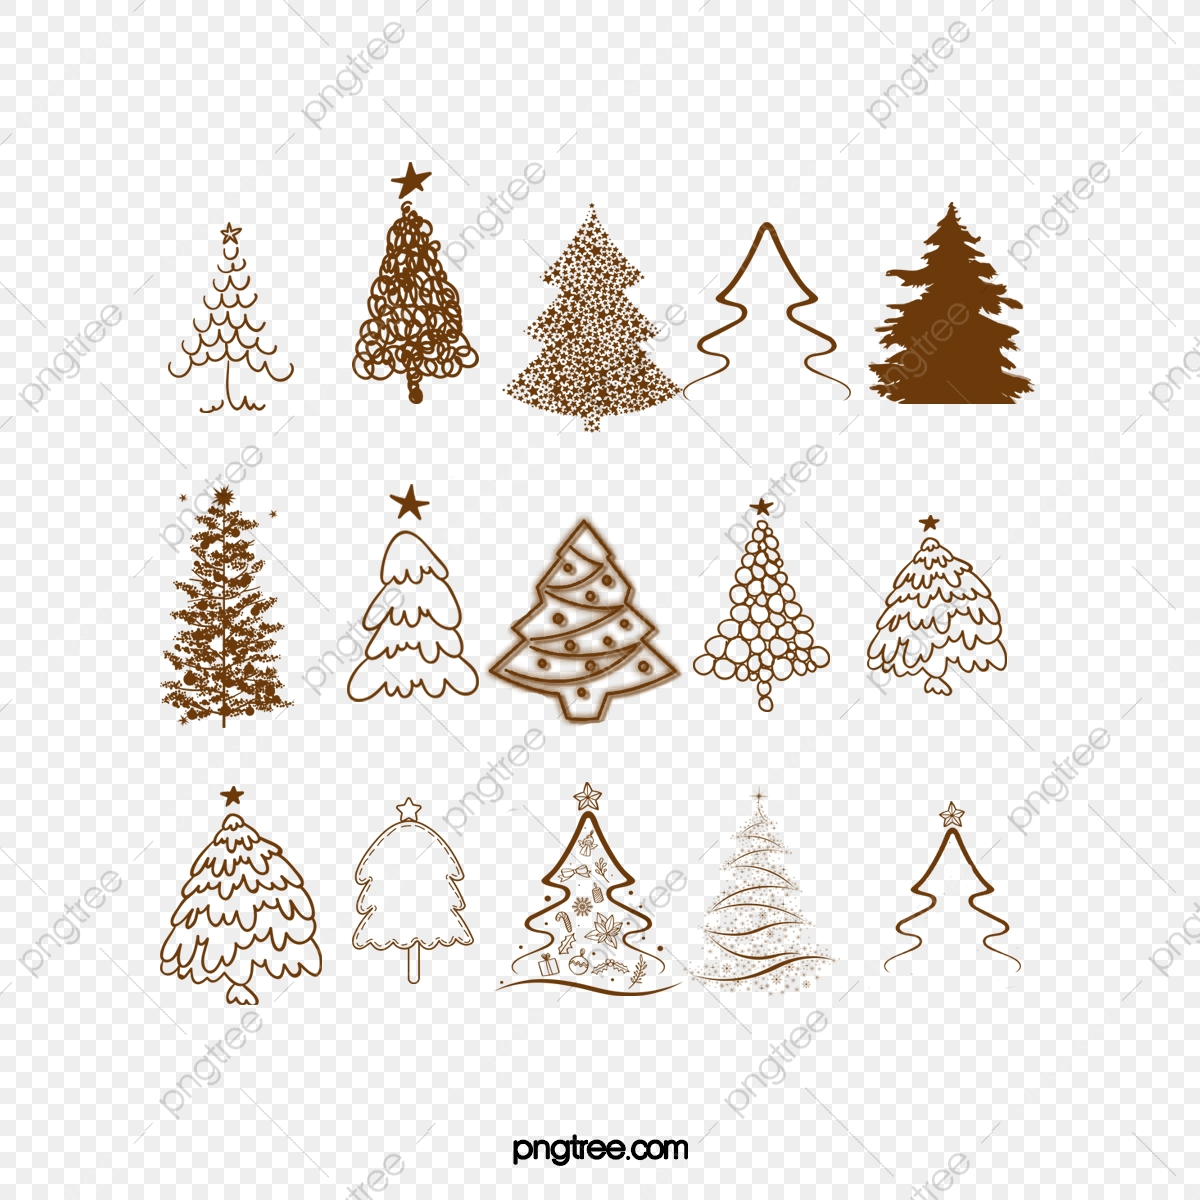 All Kinds Of Vintage Christmas Tree Vector Material Tree Clipart Christmas Decoration Png Transparent Clipart Image And Psd File For Free Download